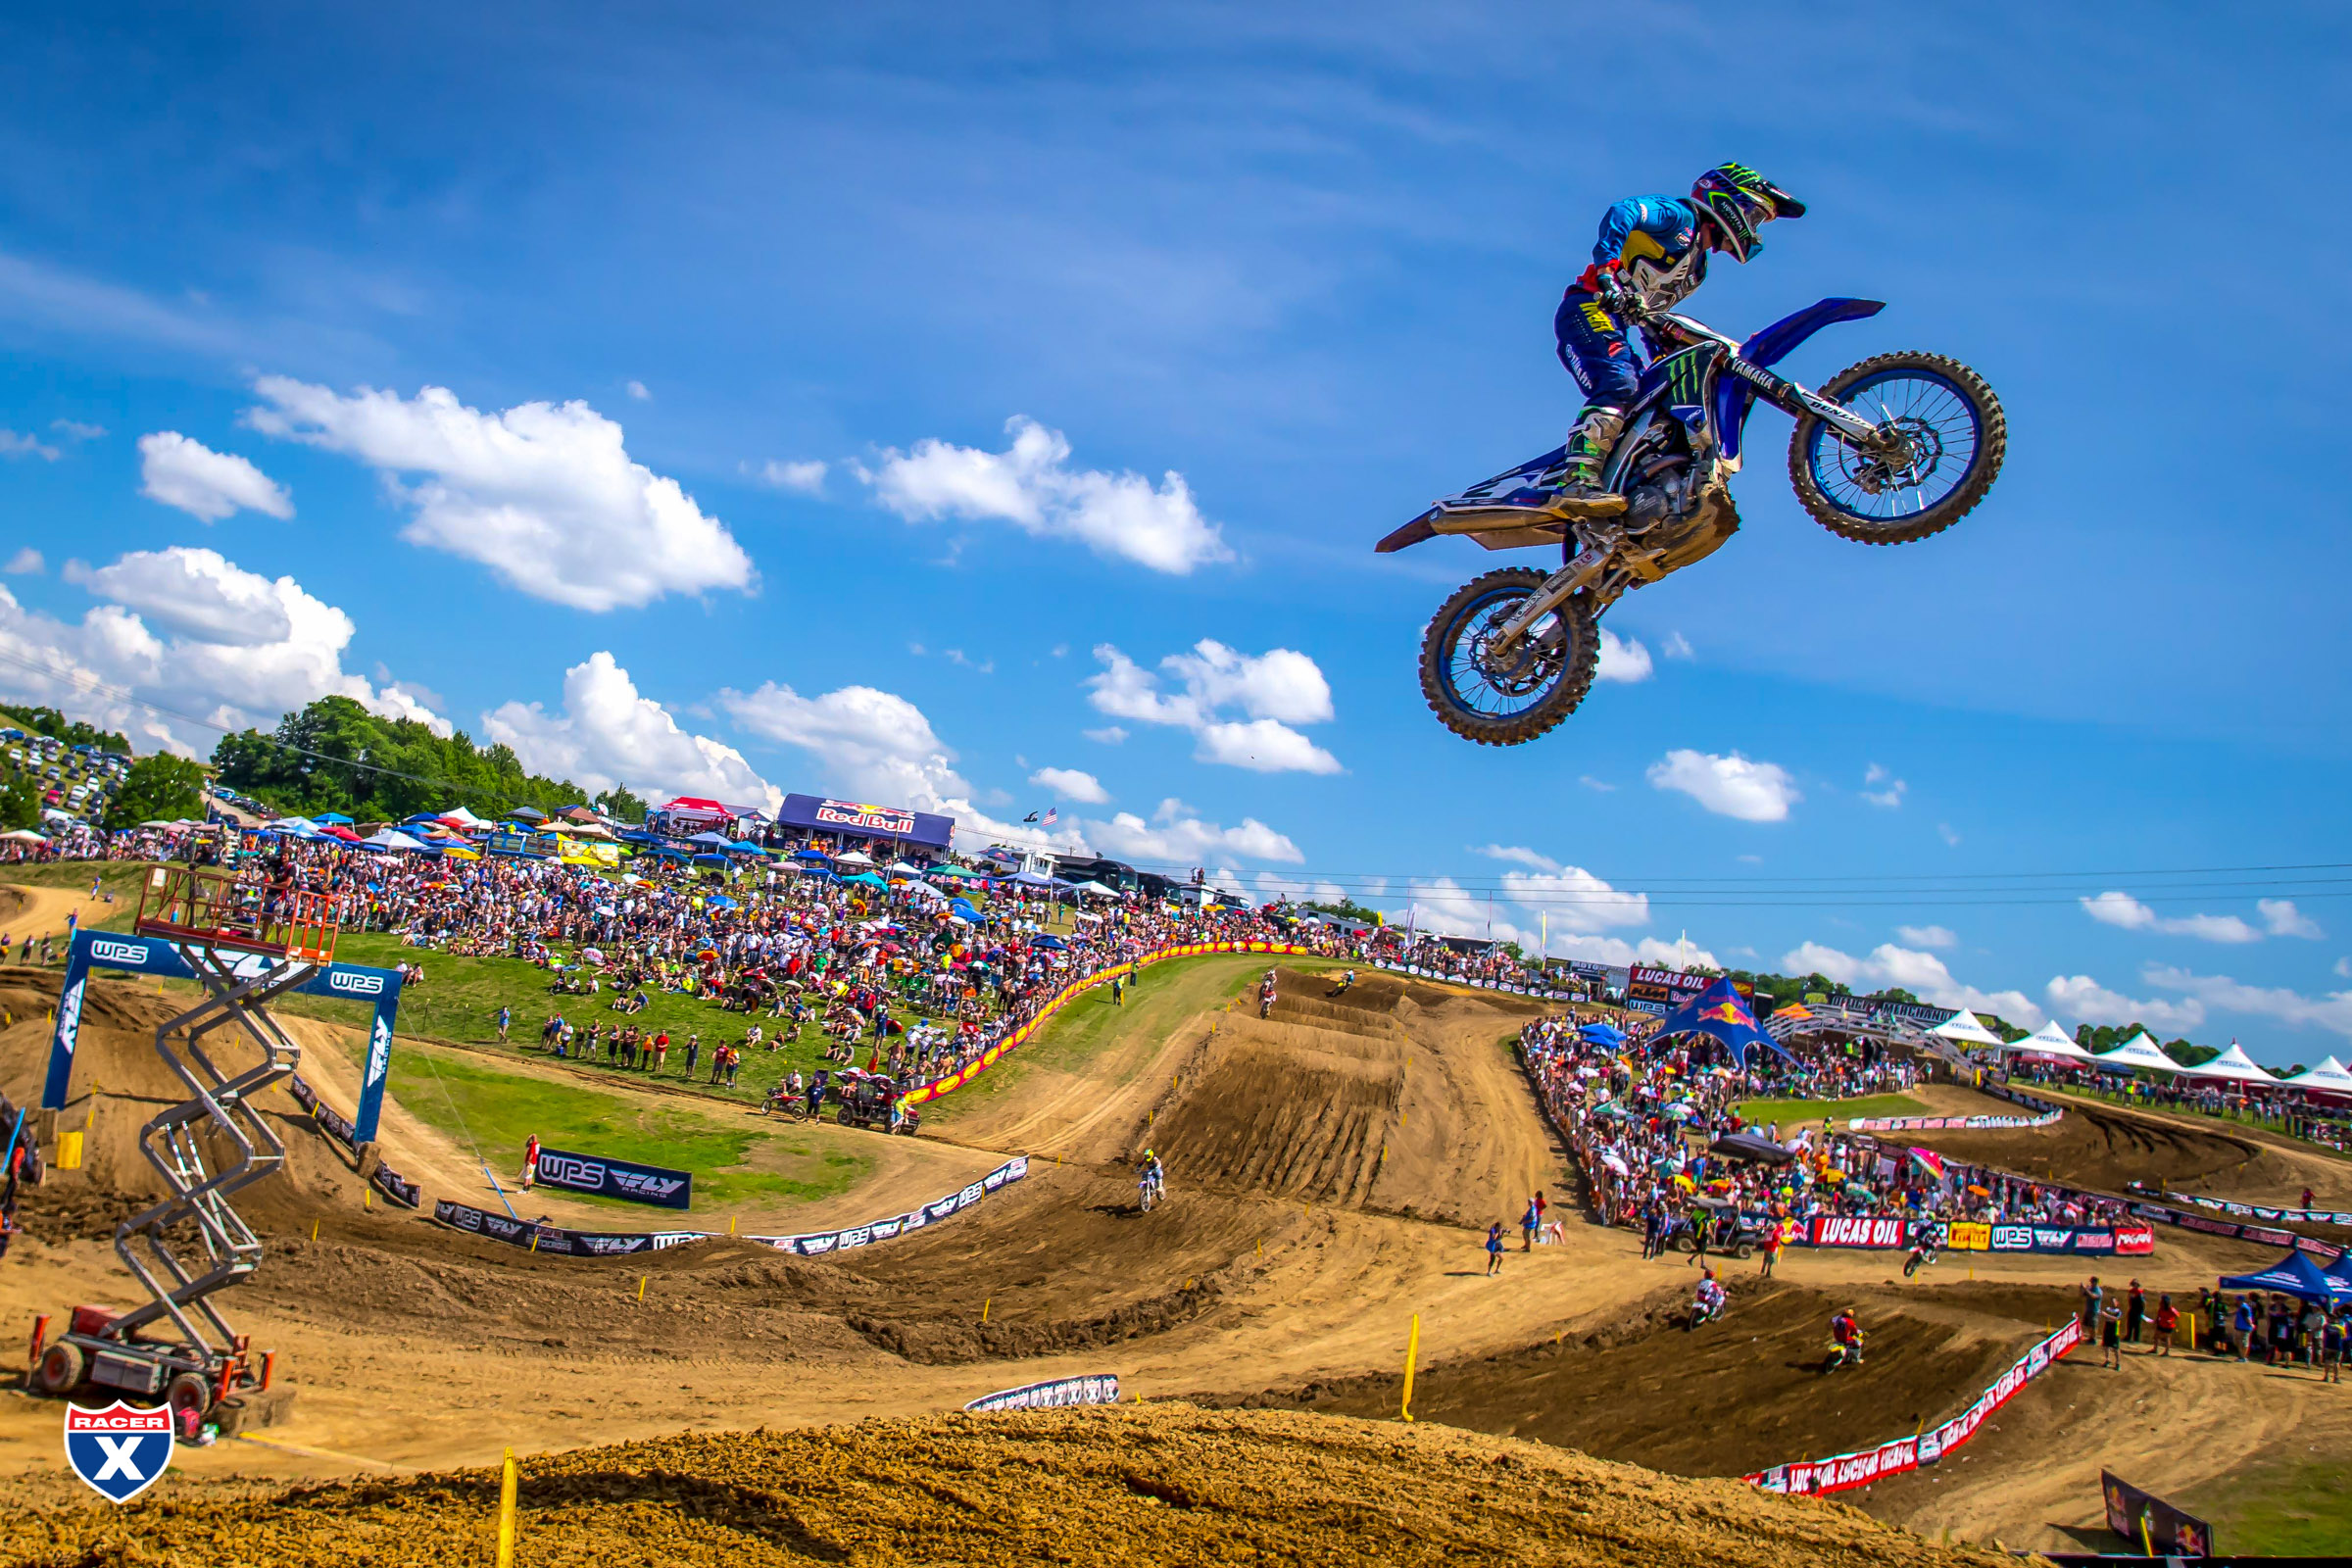 Webb_MX17_HighPoint_RS_1181